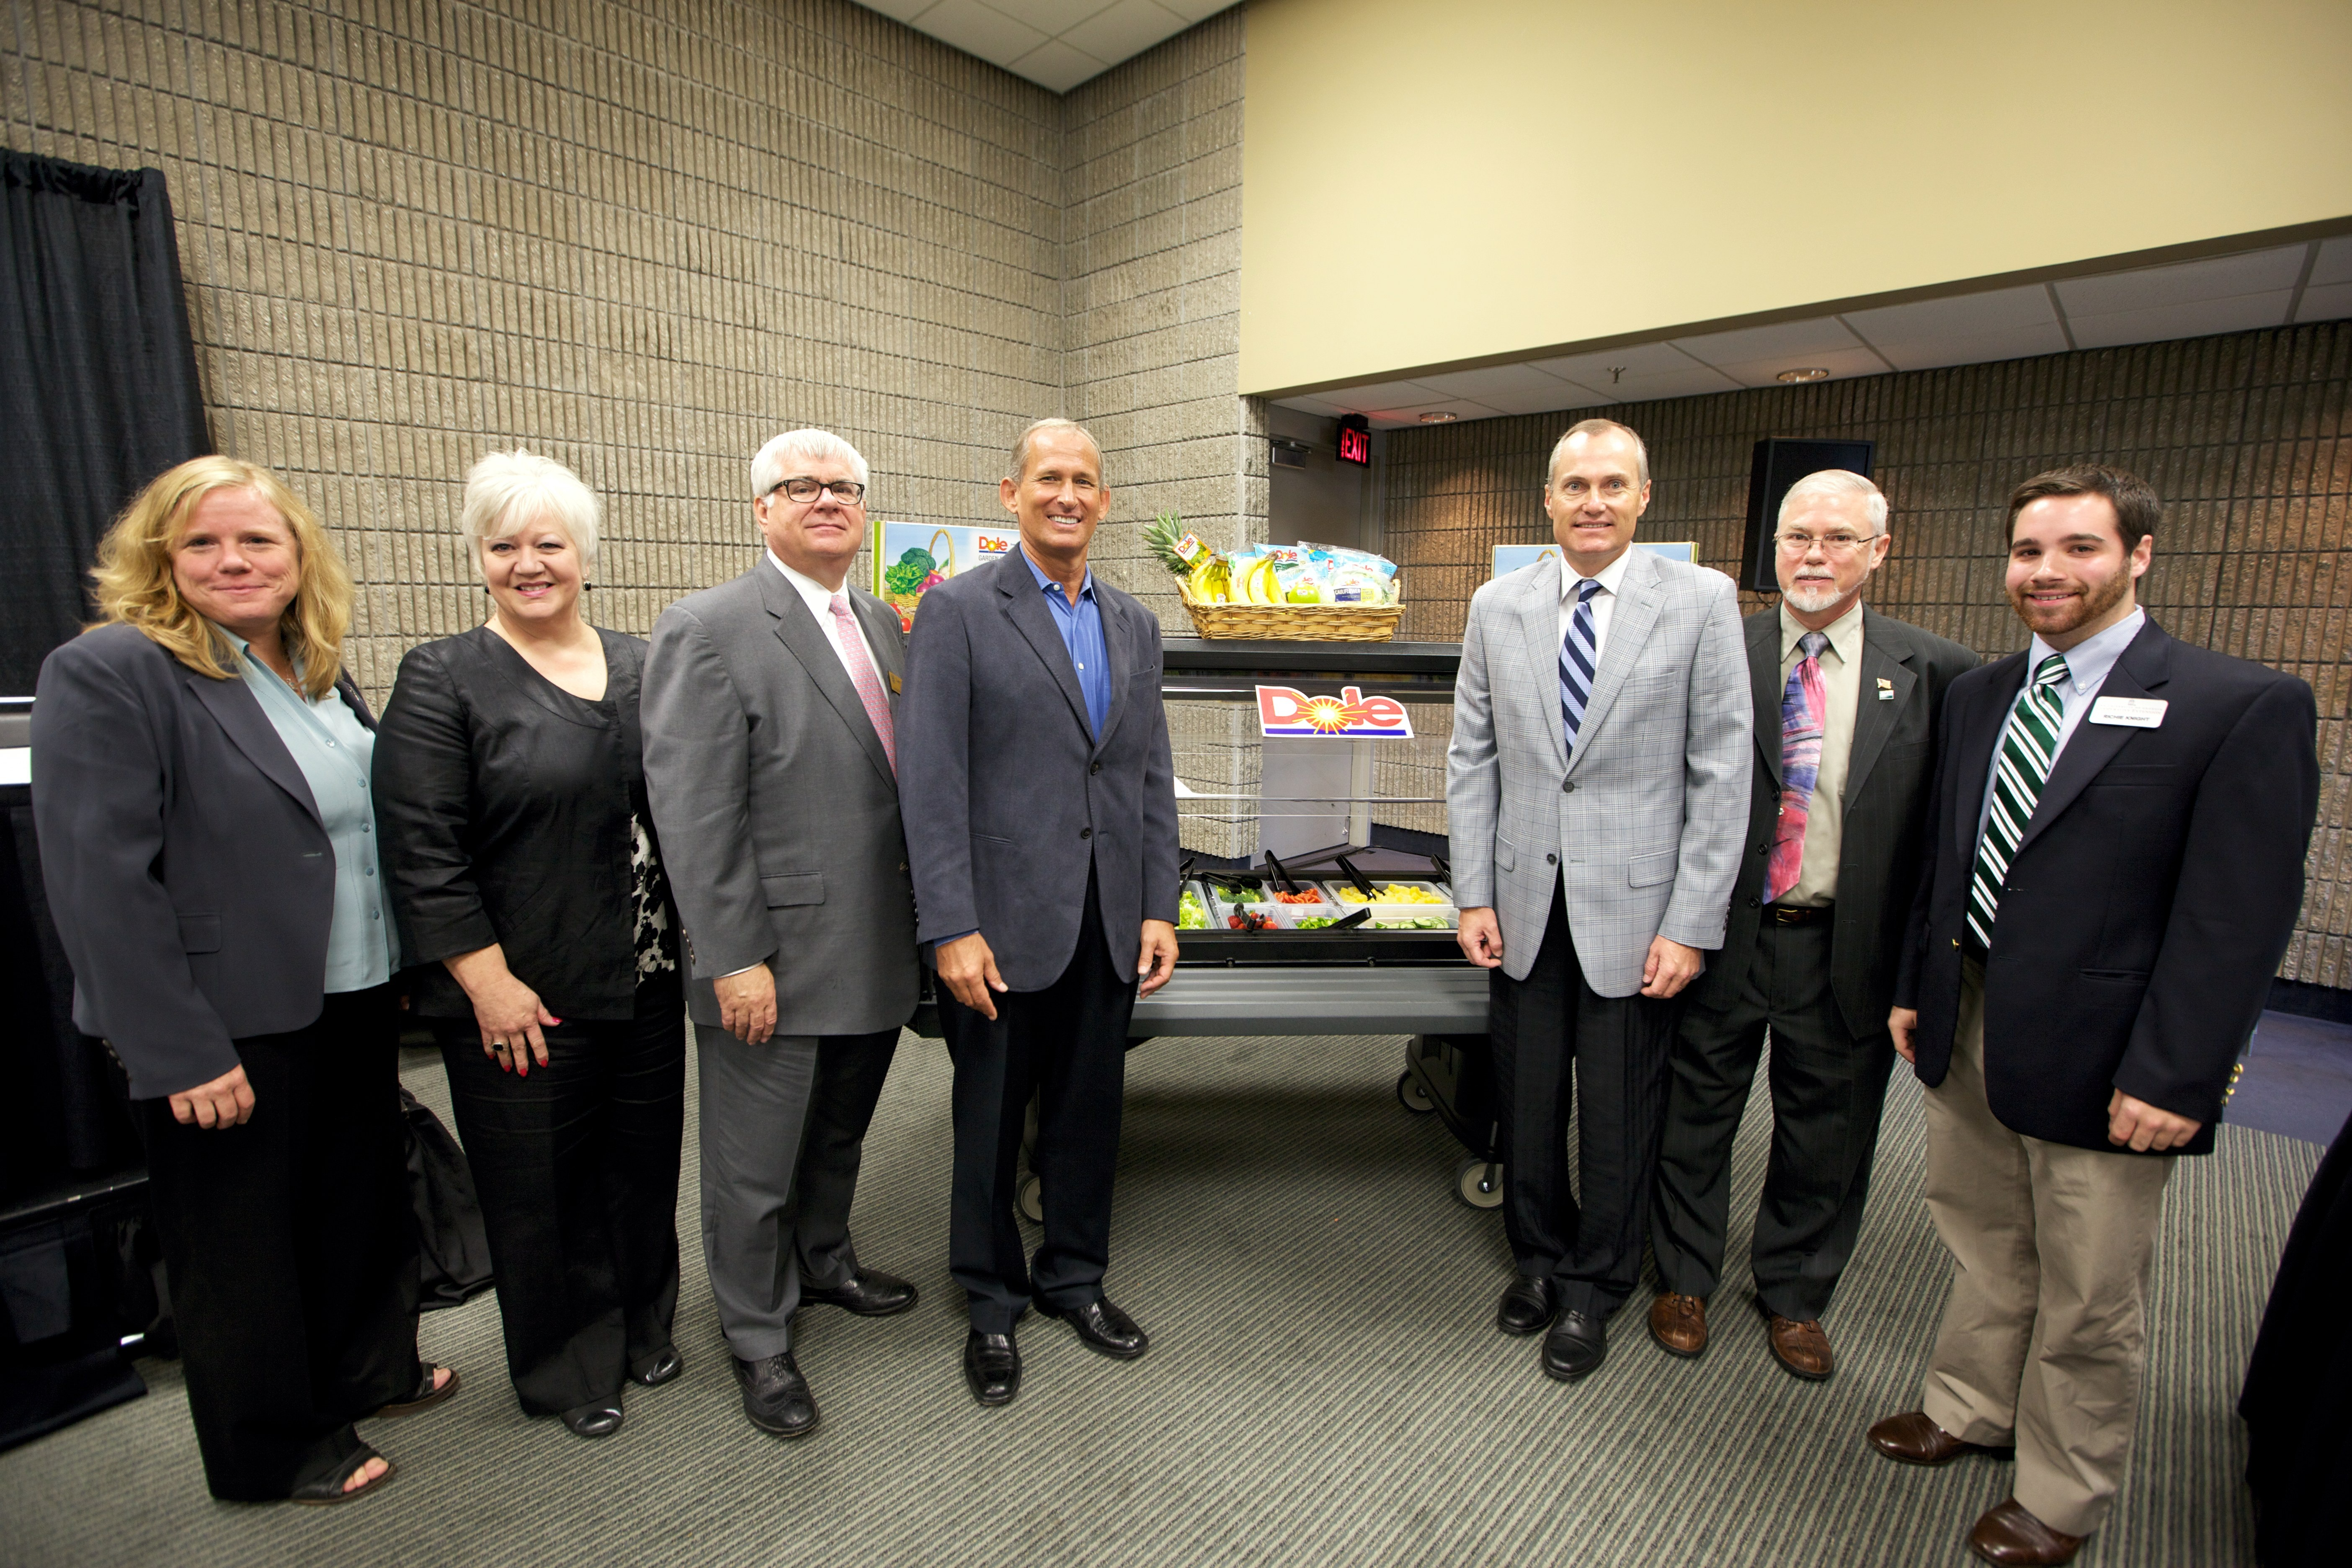 (l-r) Diane Harris (CDC), Nancy Rice (Georgia Dept. of Education), Larry Winter (Georgia Board of Education), Marty Ordman (Dole Foods), Georgia Lt. Gov. Casey Cagle, Kirk Faruquharson (USDA) and Richie Knight (Georgia 4-H).